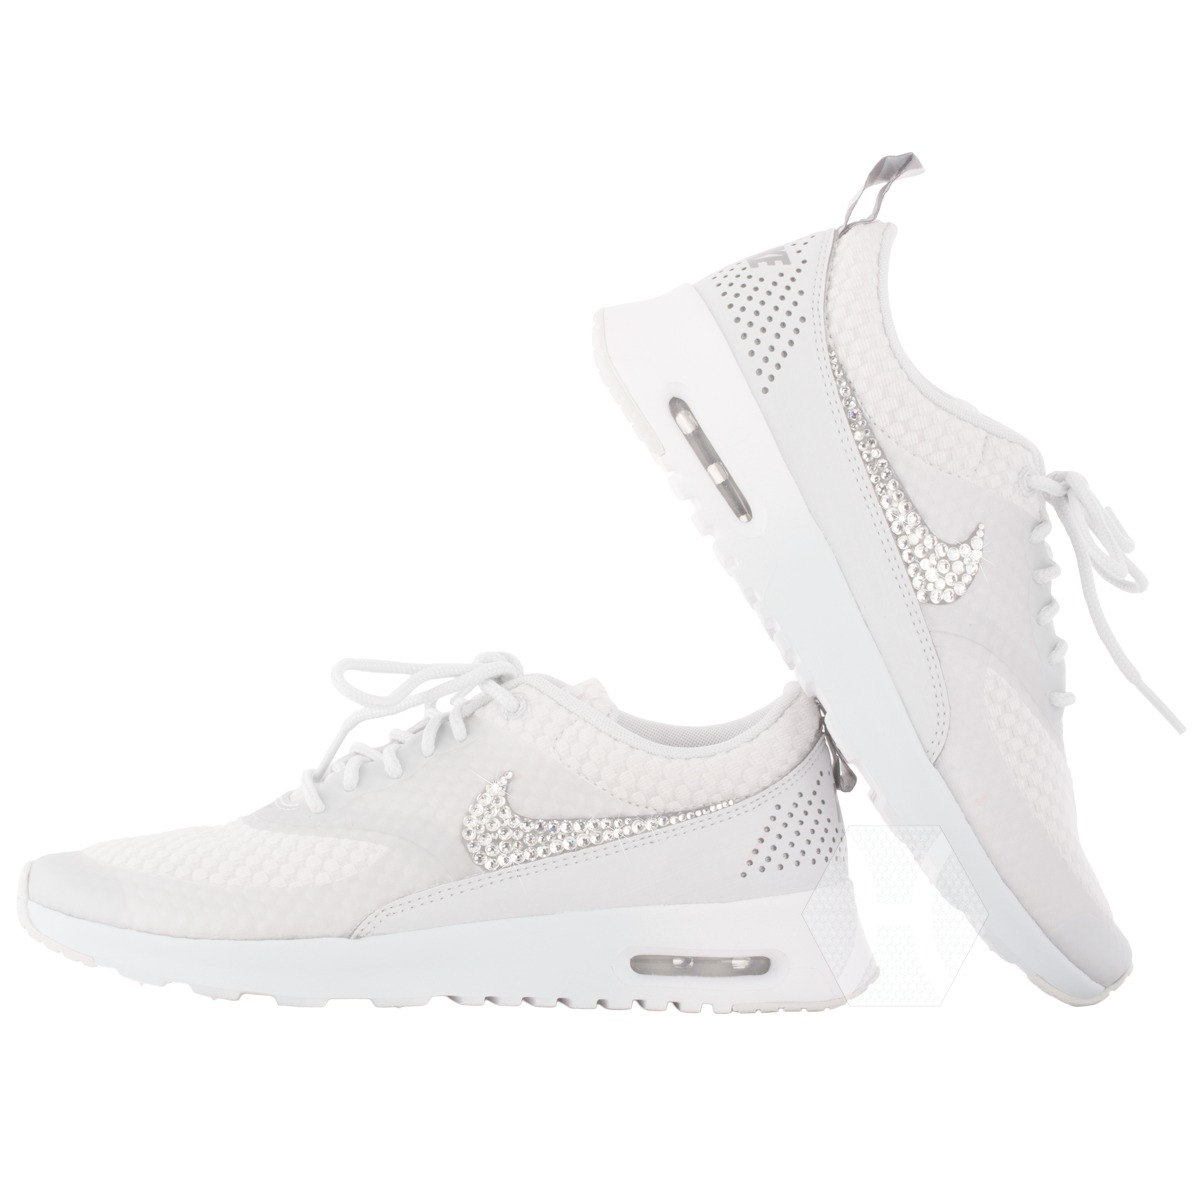 new style 6a076 b9a29 ... where to buy shoes nike running shoes diamonds nike shoes fashion nike  air max 1 white